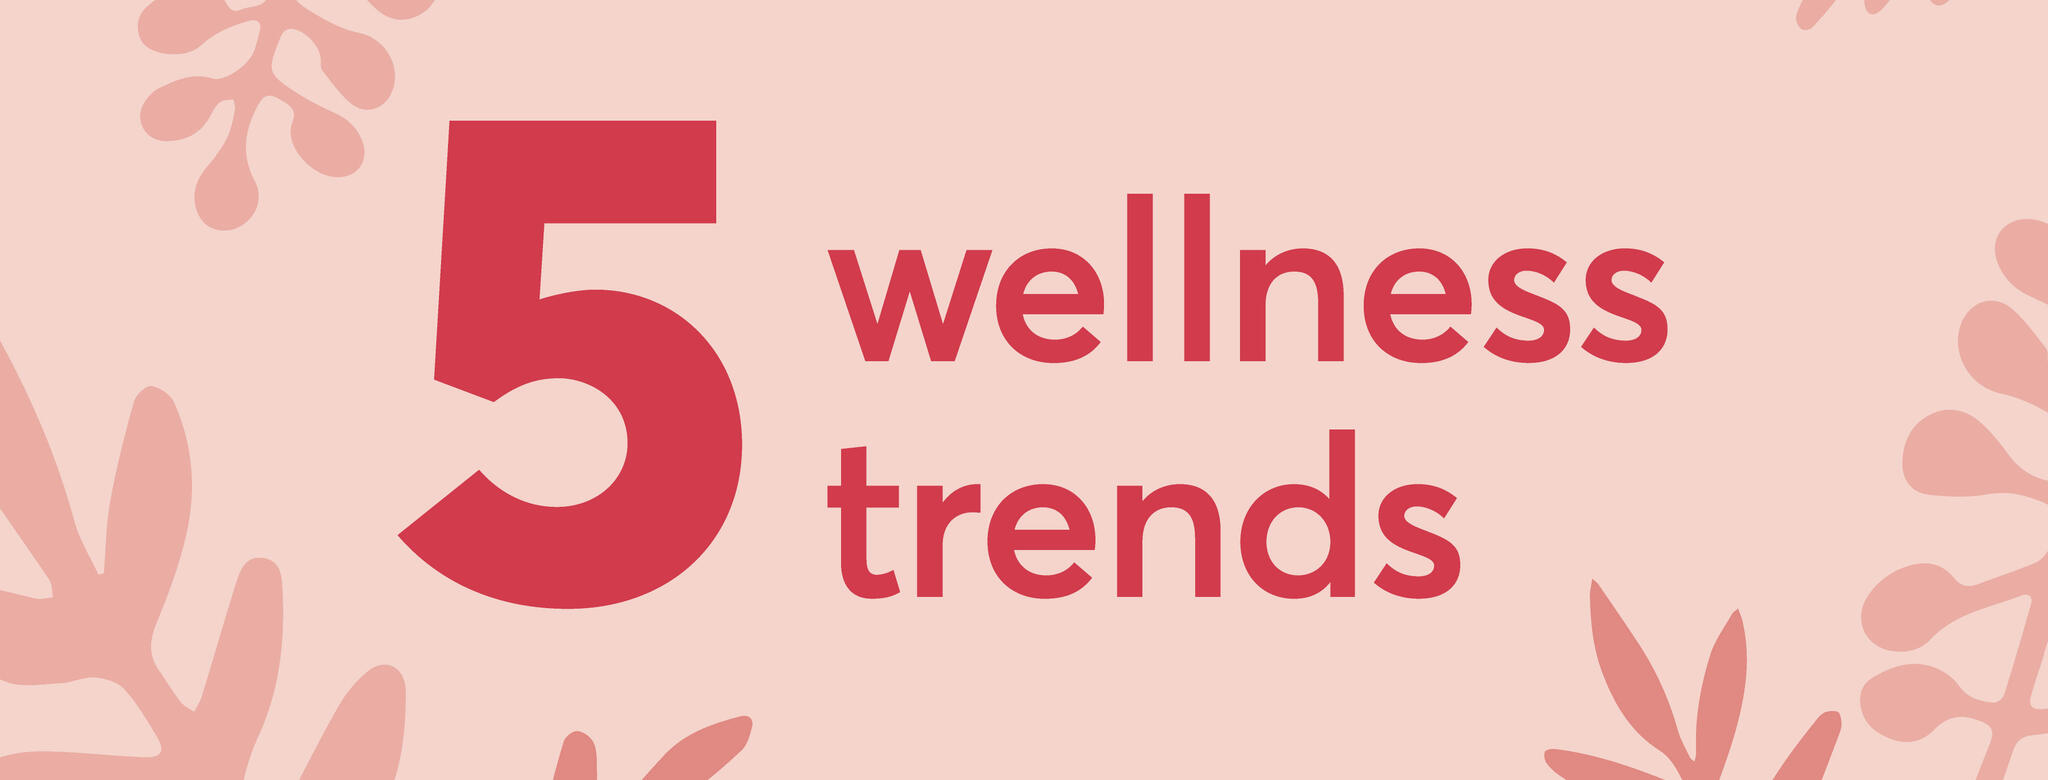 5 wellness trends